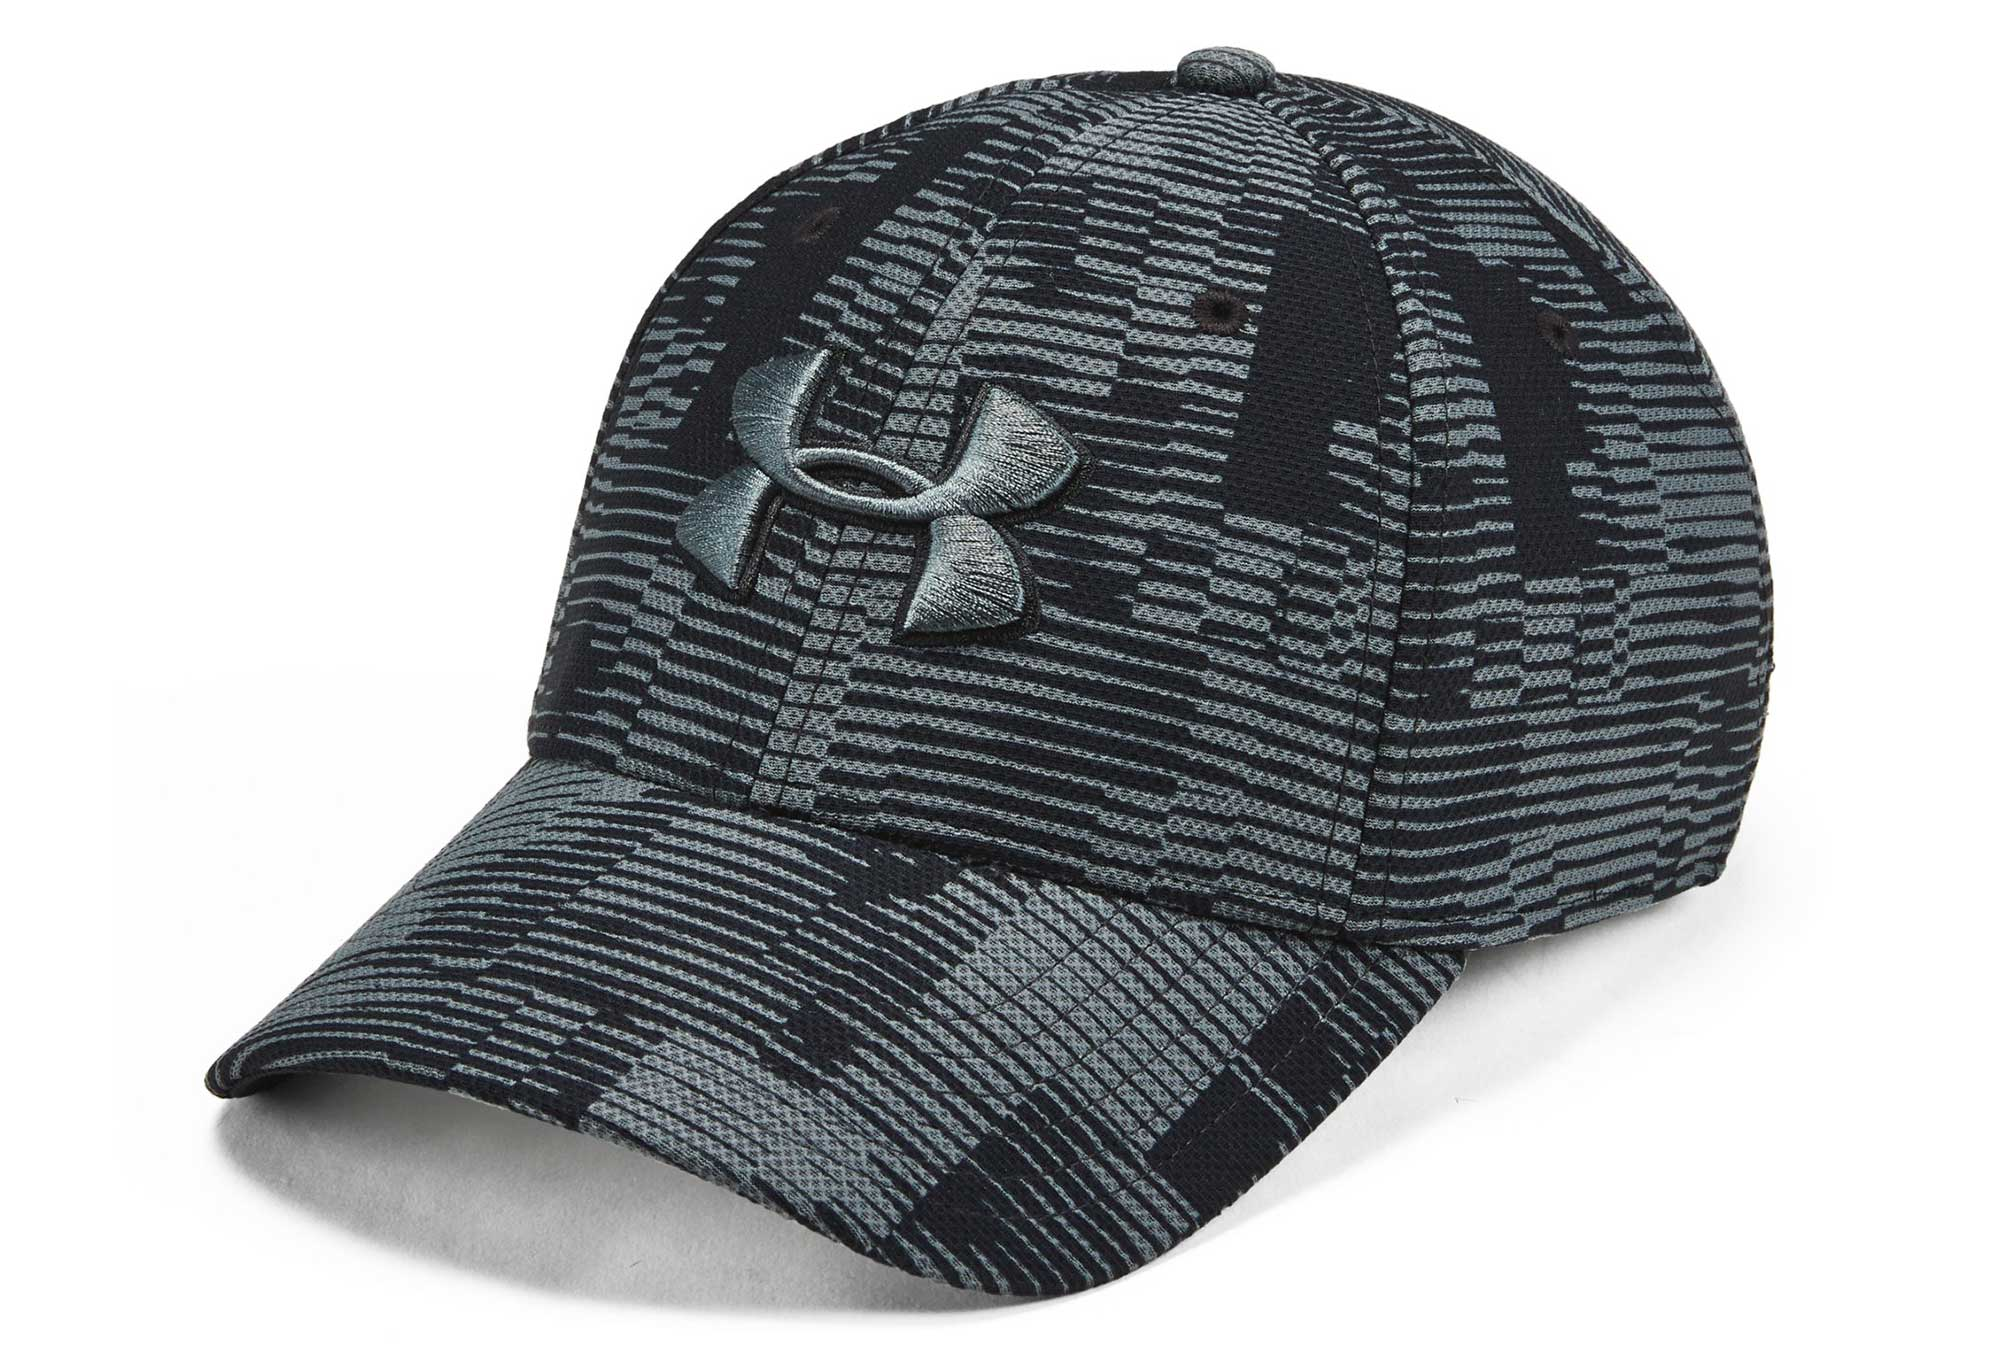 85a3770630b Under Armour Printed Blitzing 3.0 Stretch Fit Cap Black Grey ...